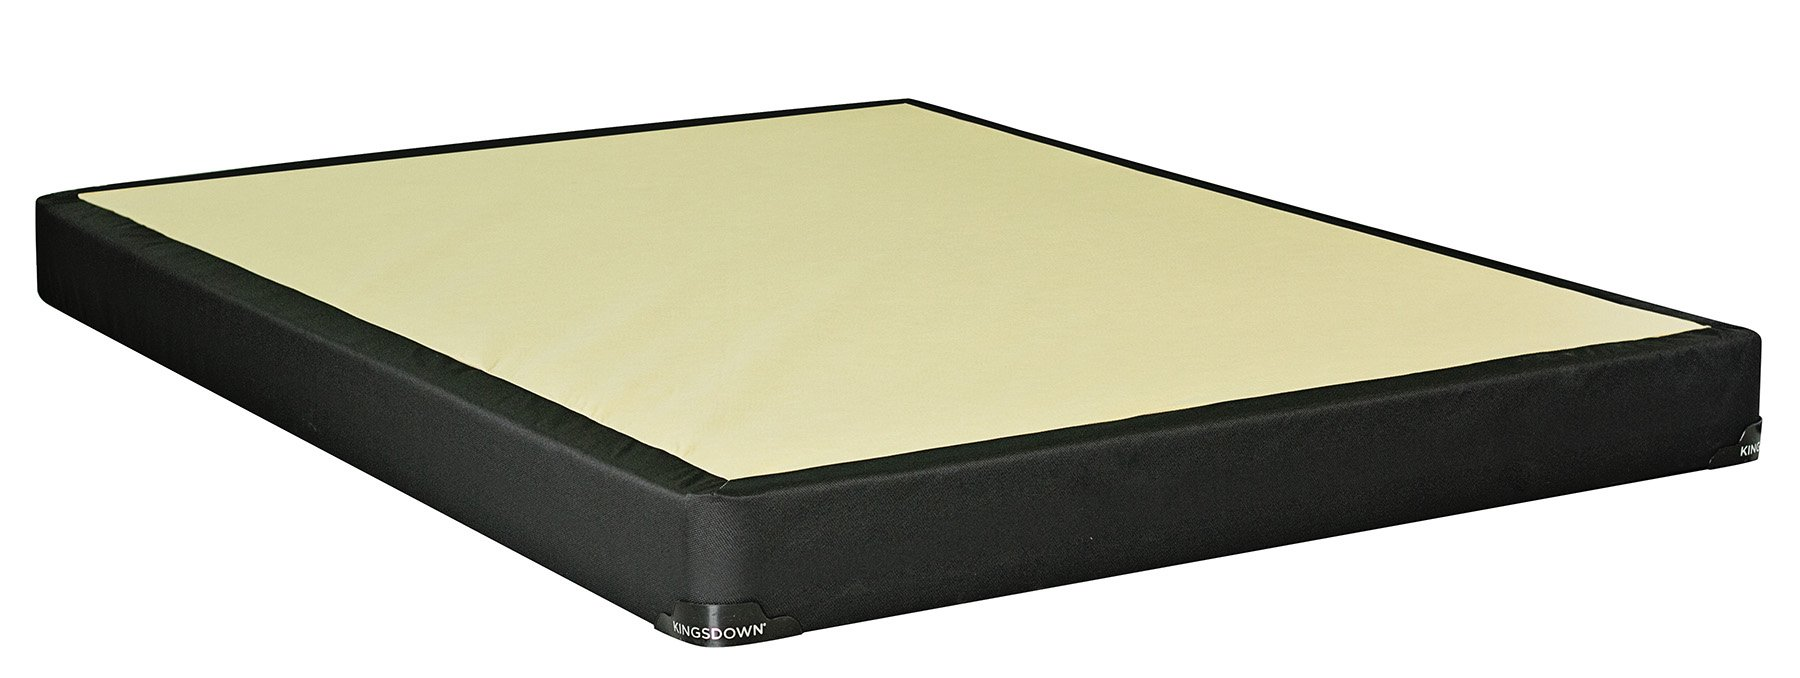 Kingsdown Passions Low Profile 5'' Box Spring Foundation, Queen by Kingsdown